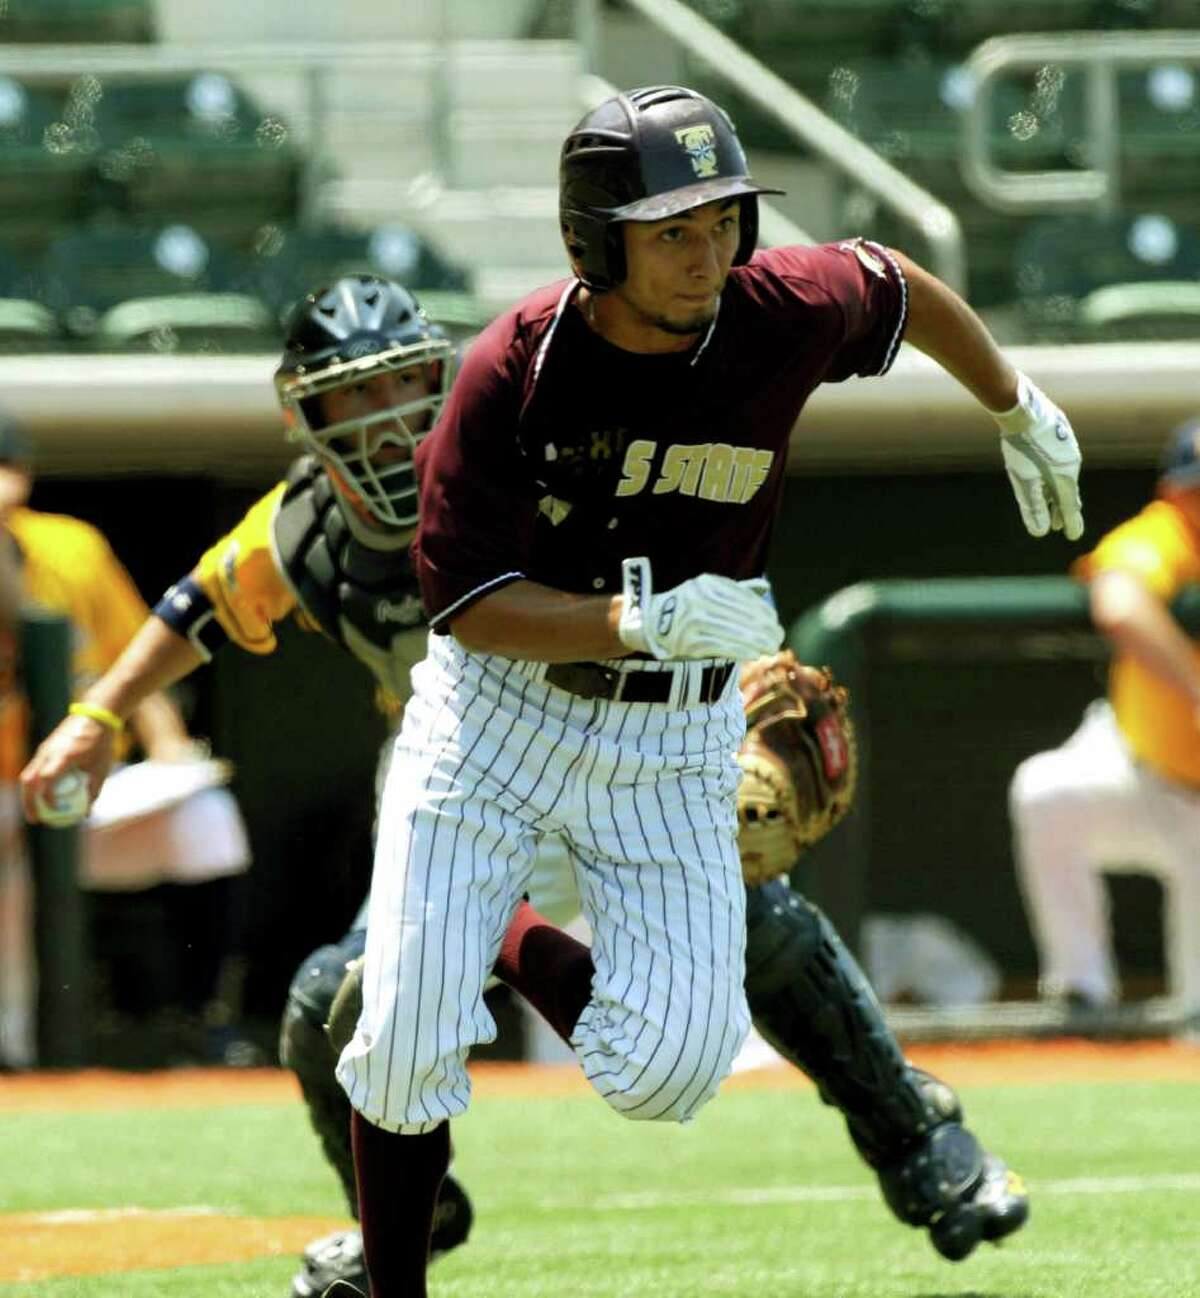 Texas State's Christian Gallegos runs for first as Kent State catcher David Lyon throws him out during the NCAA Baseball Austin Regional on Friday, June 3, 2011. BILLY CALZADA / gcalzada@express-news.net